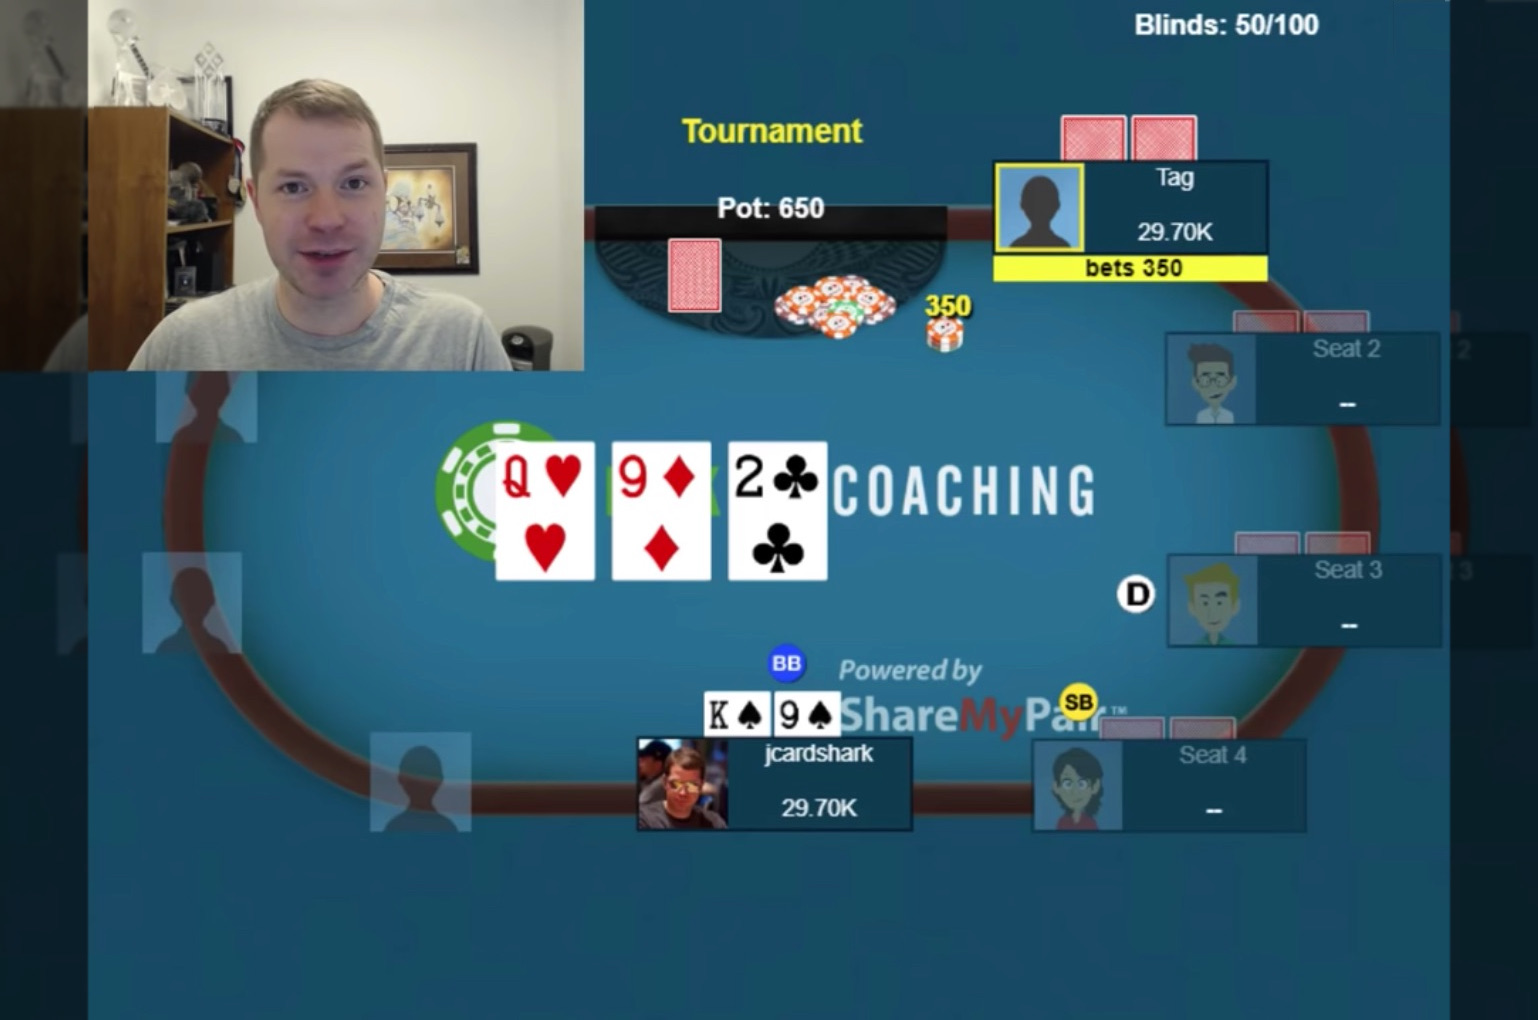 A Common Postflop Spot With Middle Pair